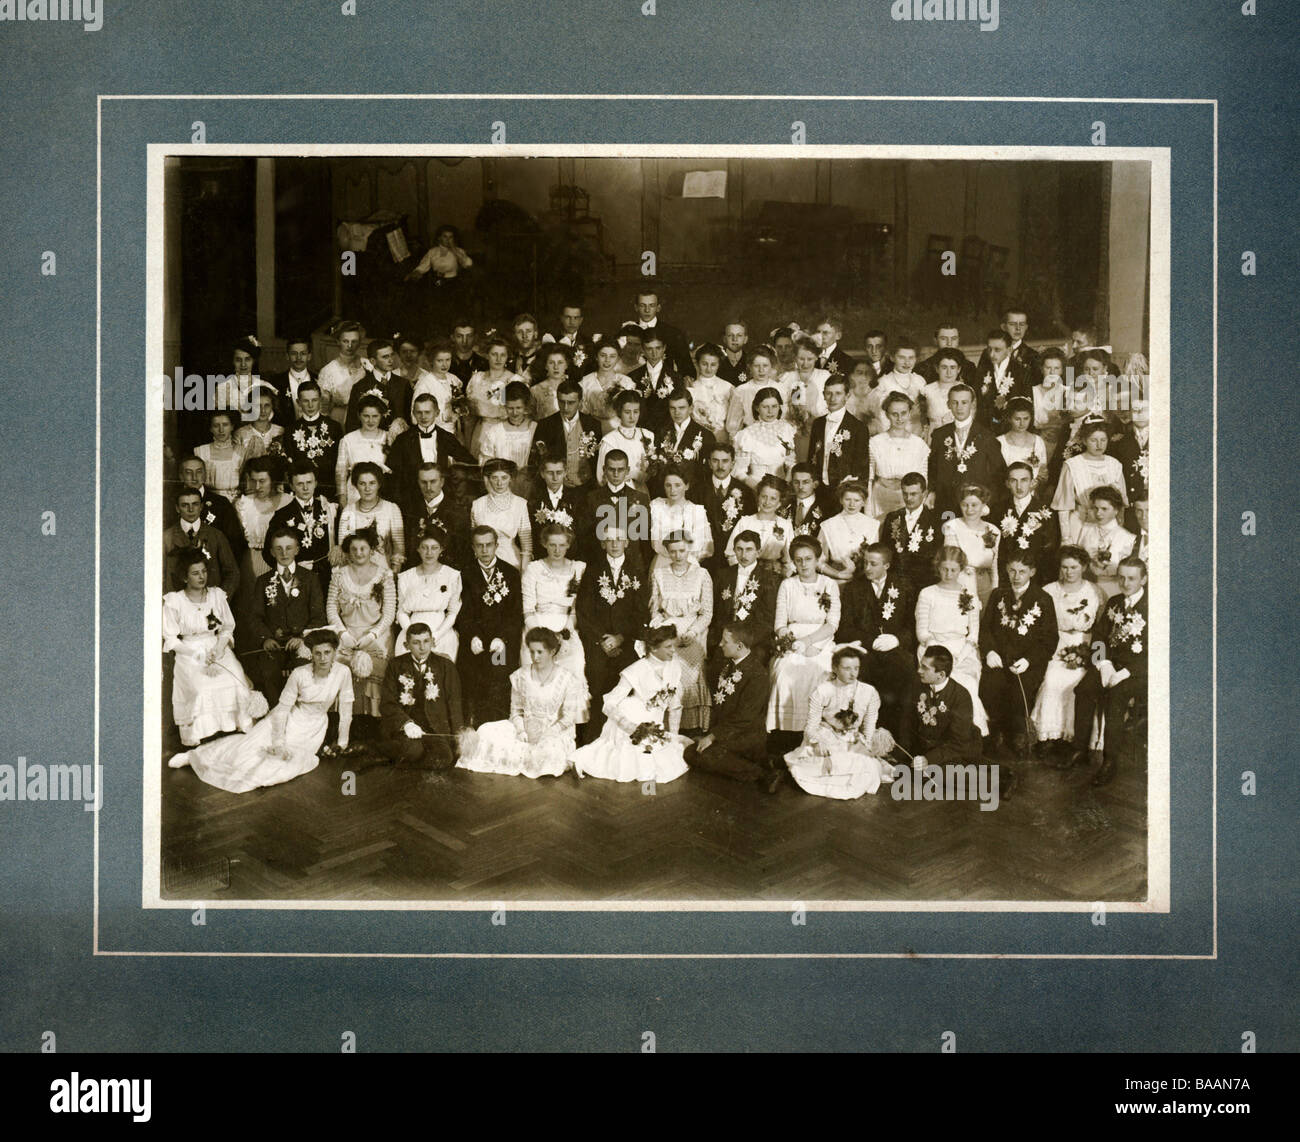 festivity, balls and parties, group picture, debutants, October 1909, Additional-Rights-Clearances-NA - Stock Image